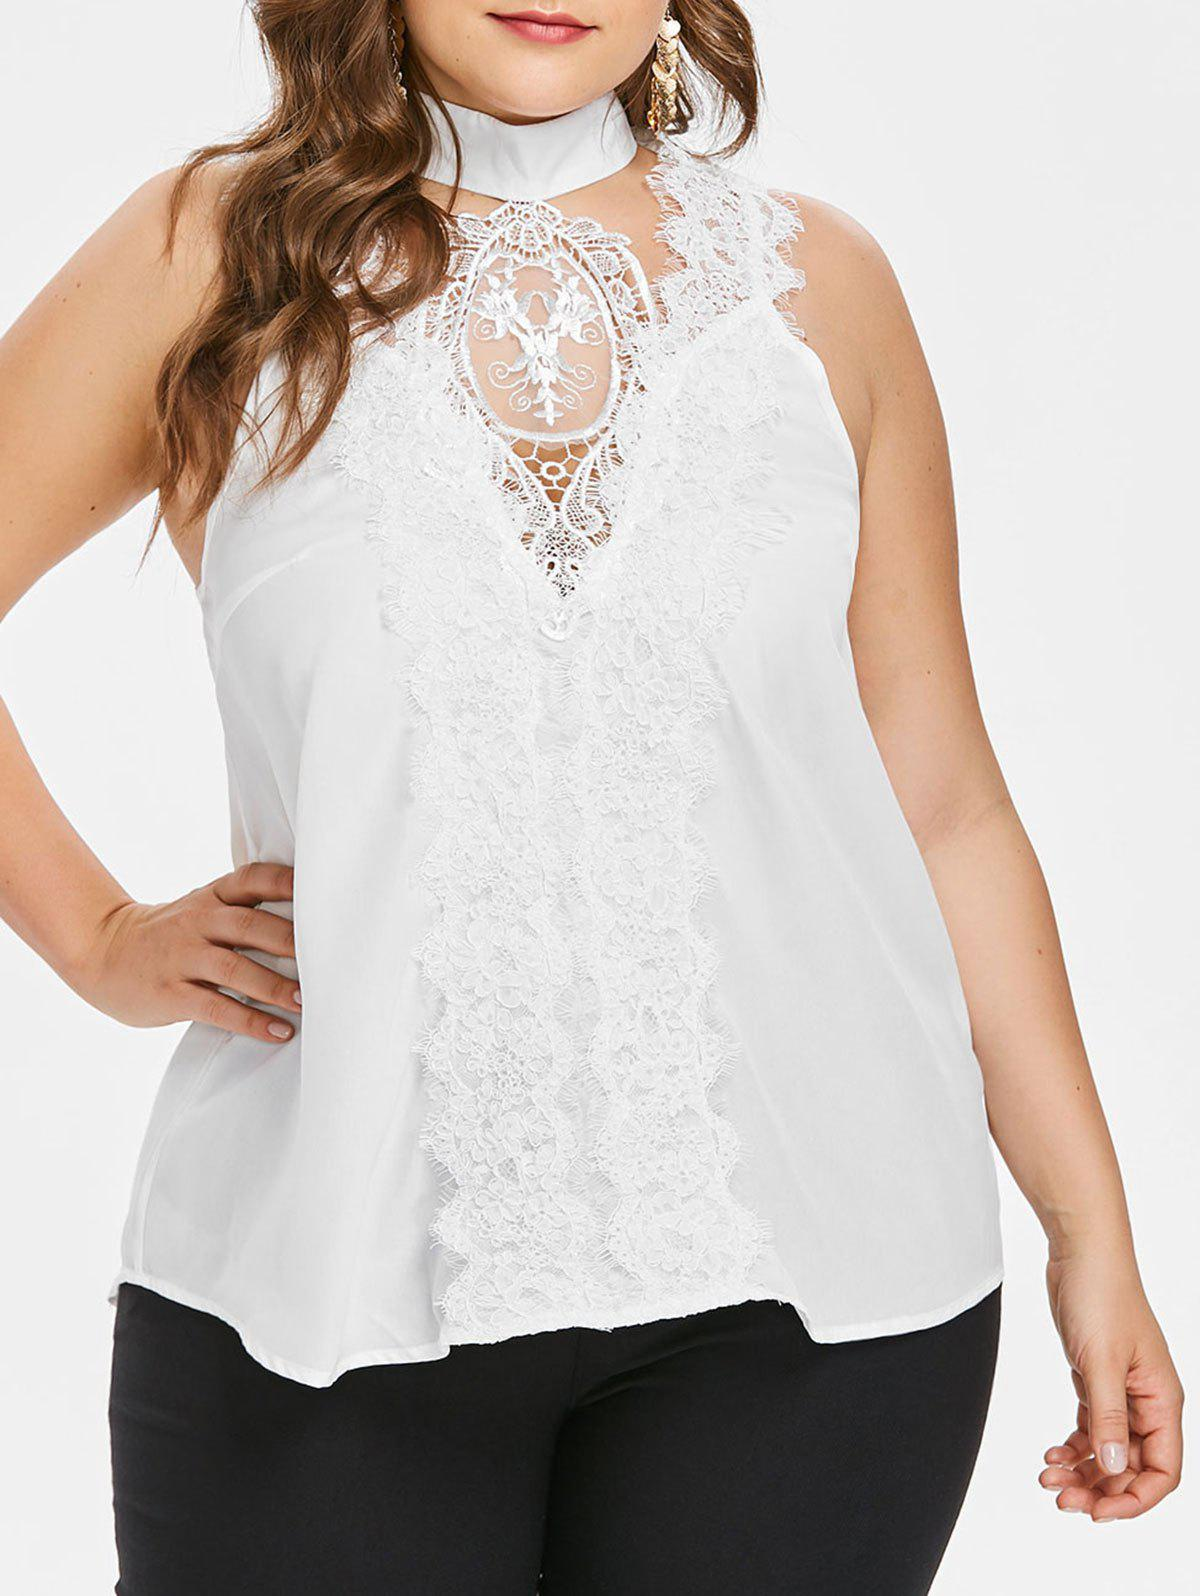 41586099c71 2019 Plus Size Lace Mock Neck Tank Top